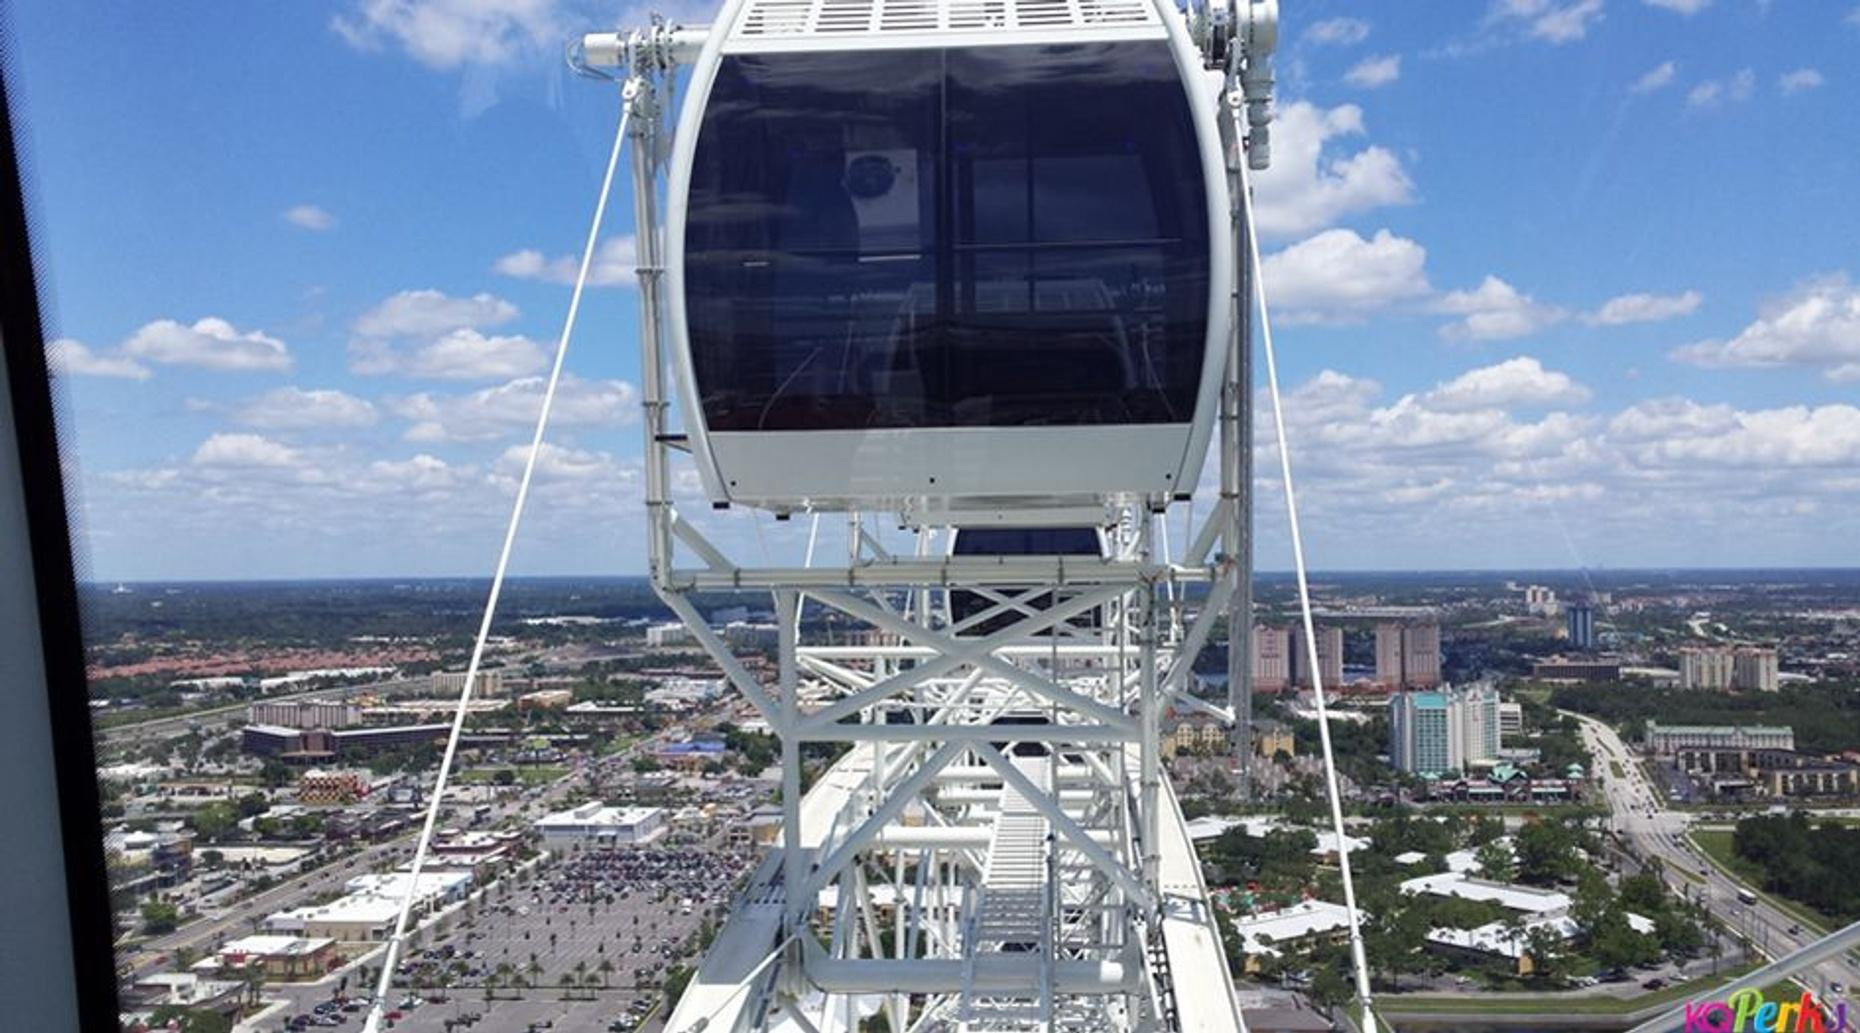 Orlando Eye & I-Drive 360 Day Tour